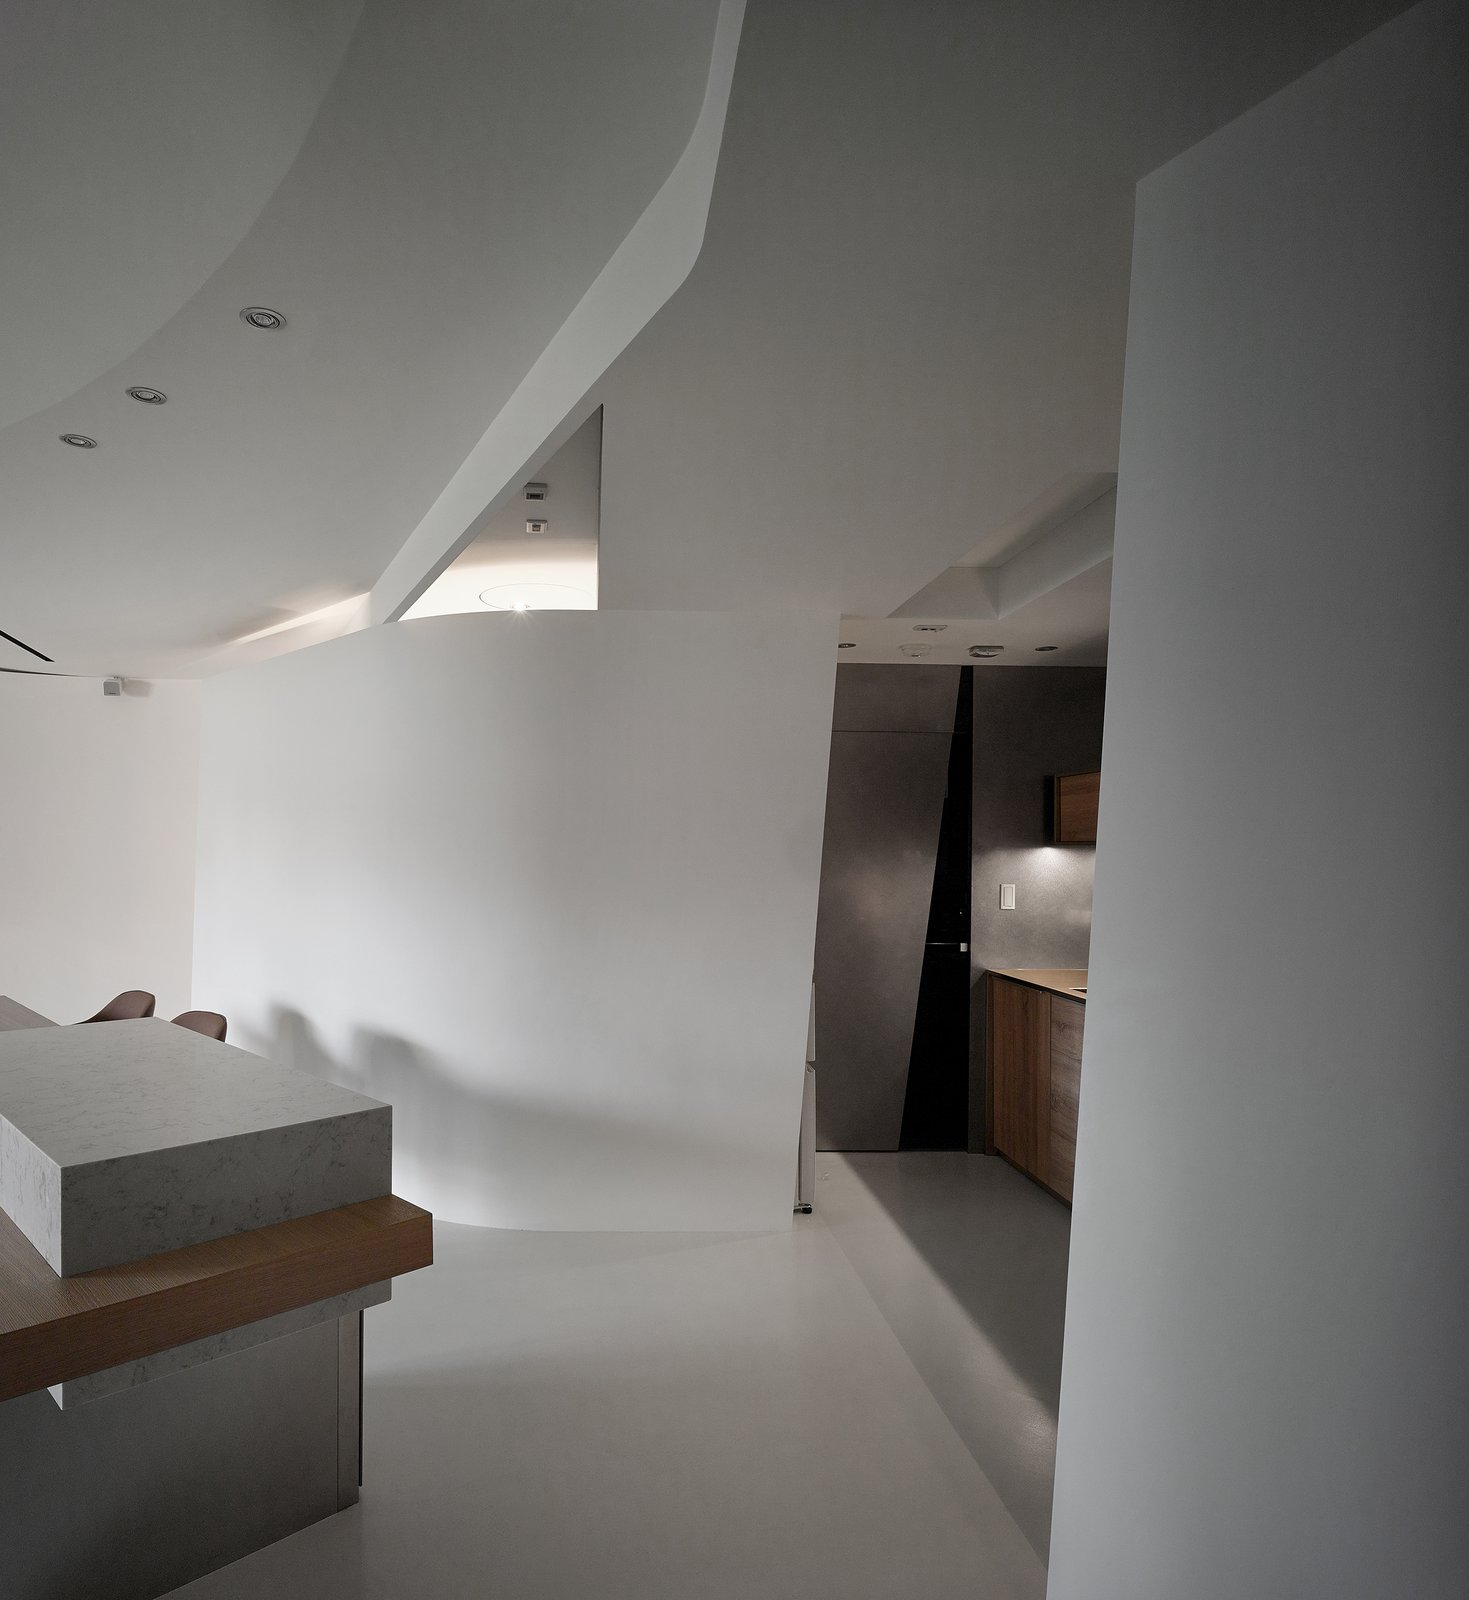 Lights and air conditioning vents are integrated into the ceiling and enrich its variation.